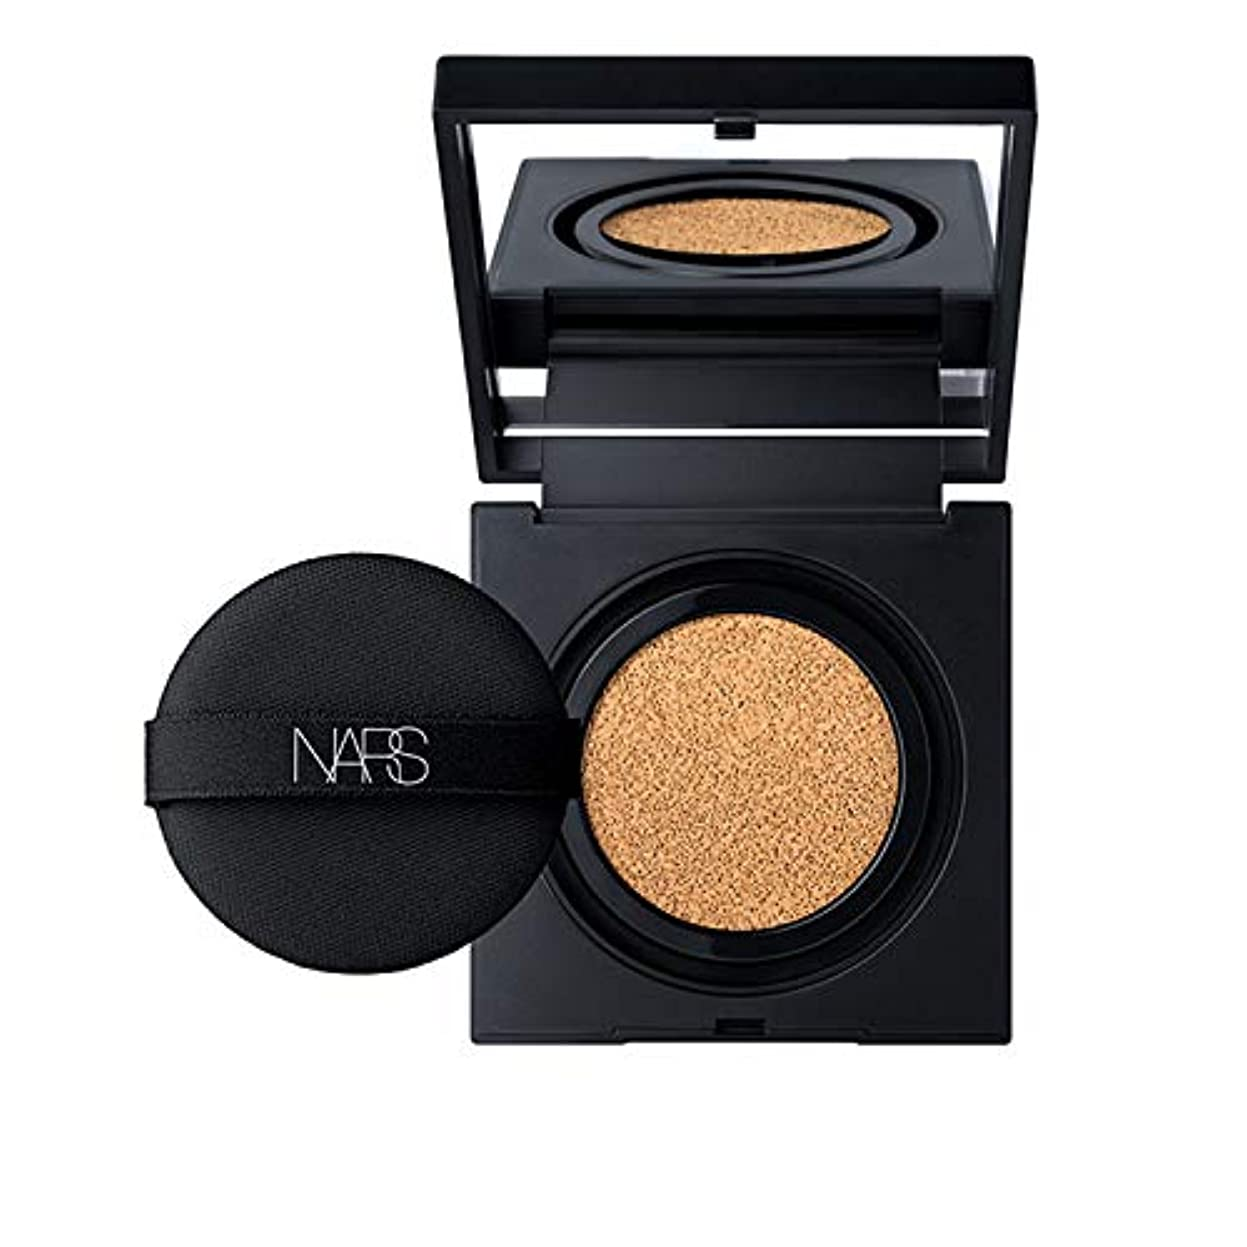 機関車競う逆Nars(ナーズ) Natural Radiant Longwear Cushion Foundation 12g # Deaubville